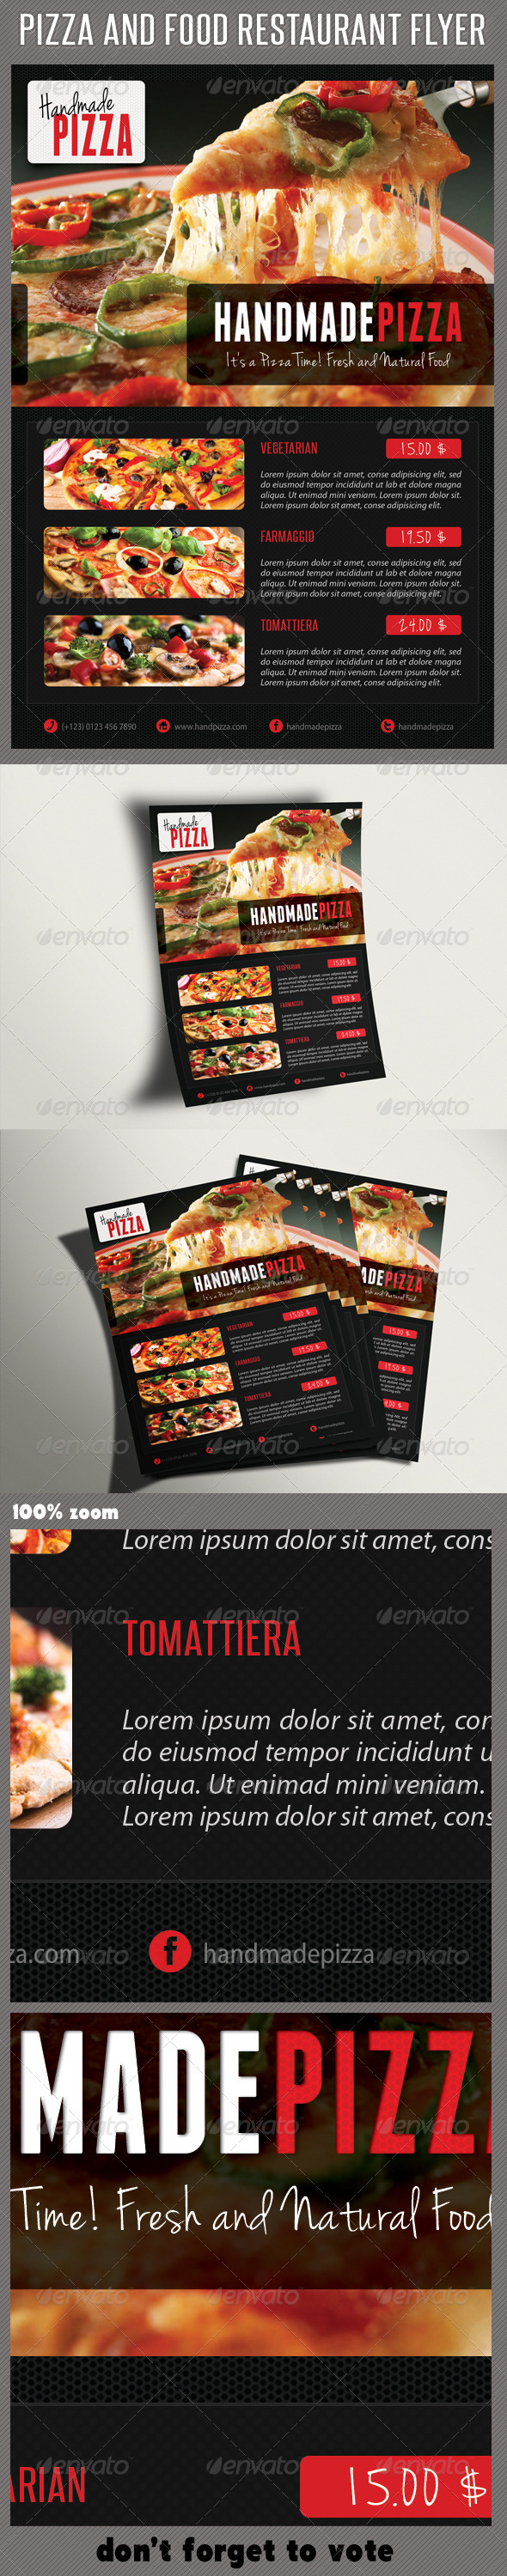 Food And Pizza Menu Flyer 02 - Restaurant Flyers